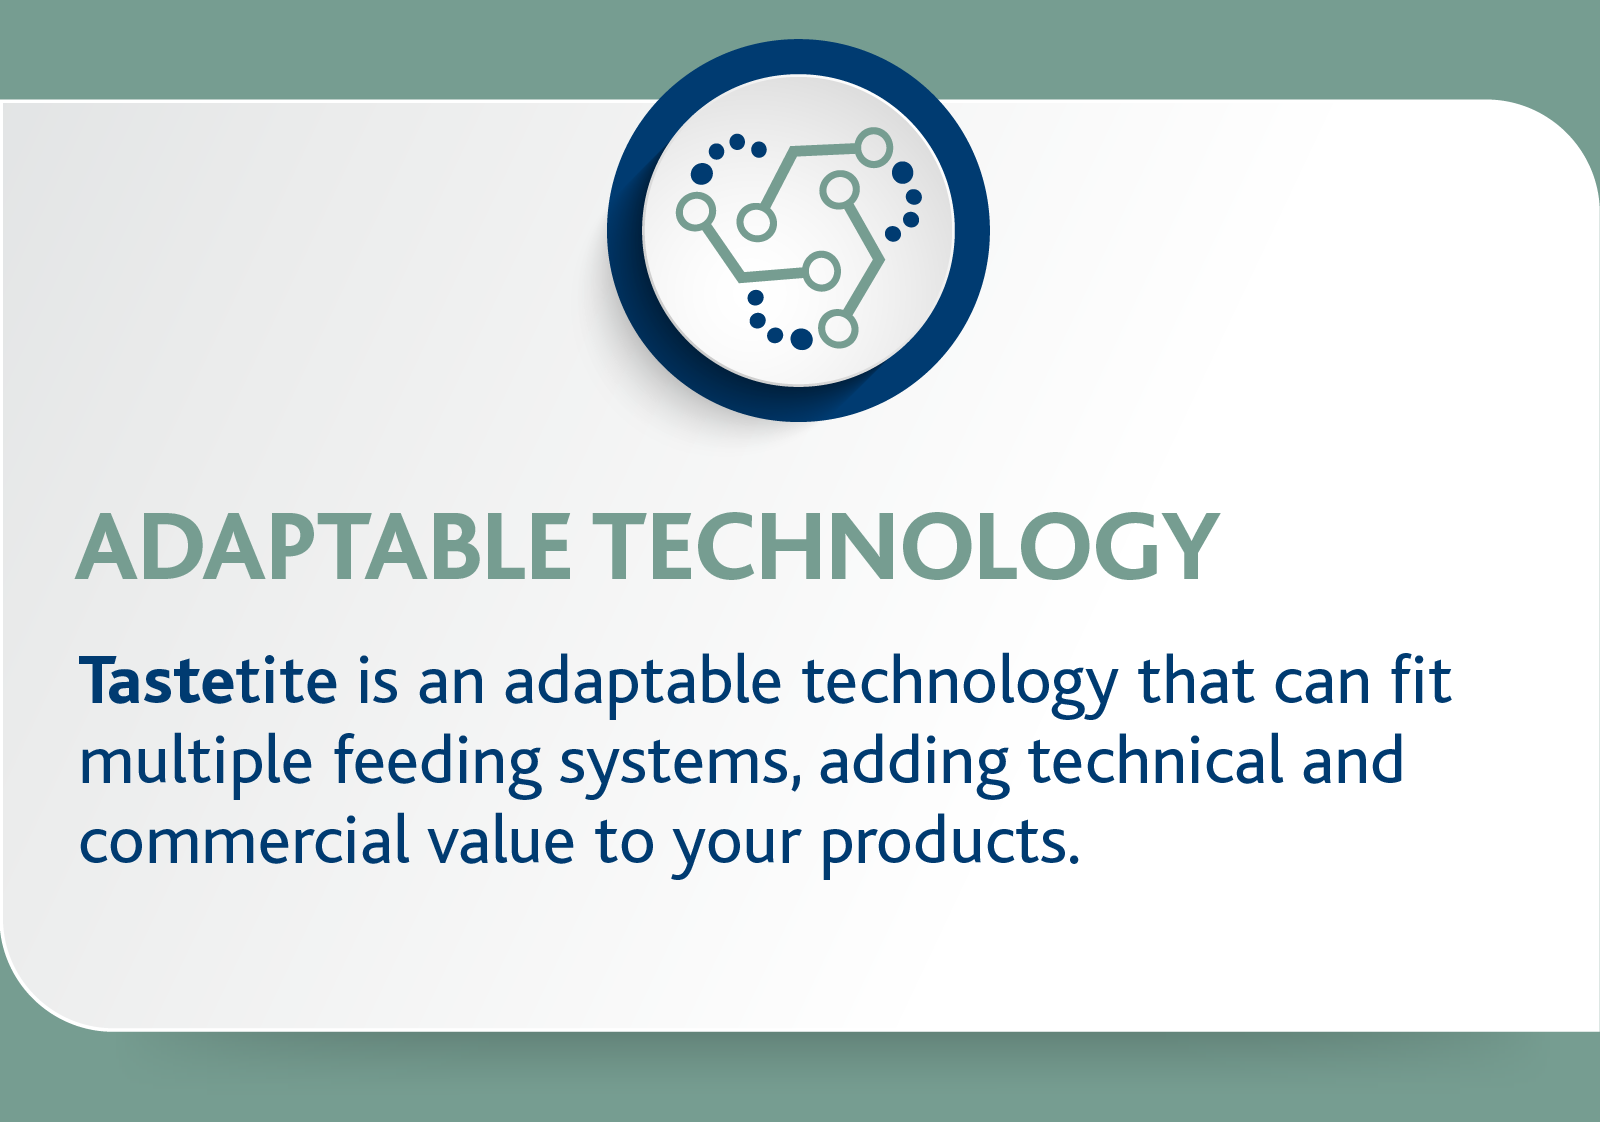 Inroads Tastetite is adaptable adding technical and commercial value to your anmial feed